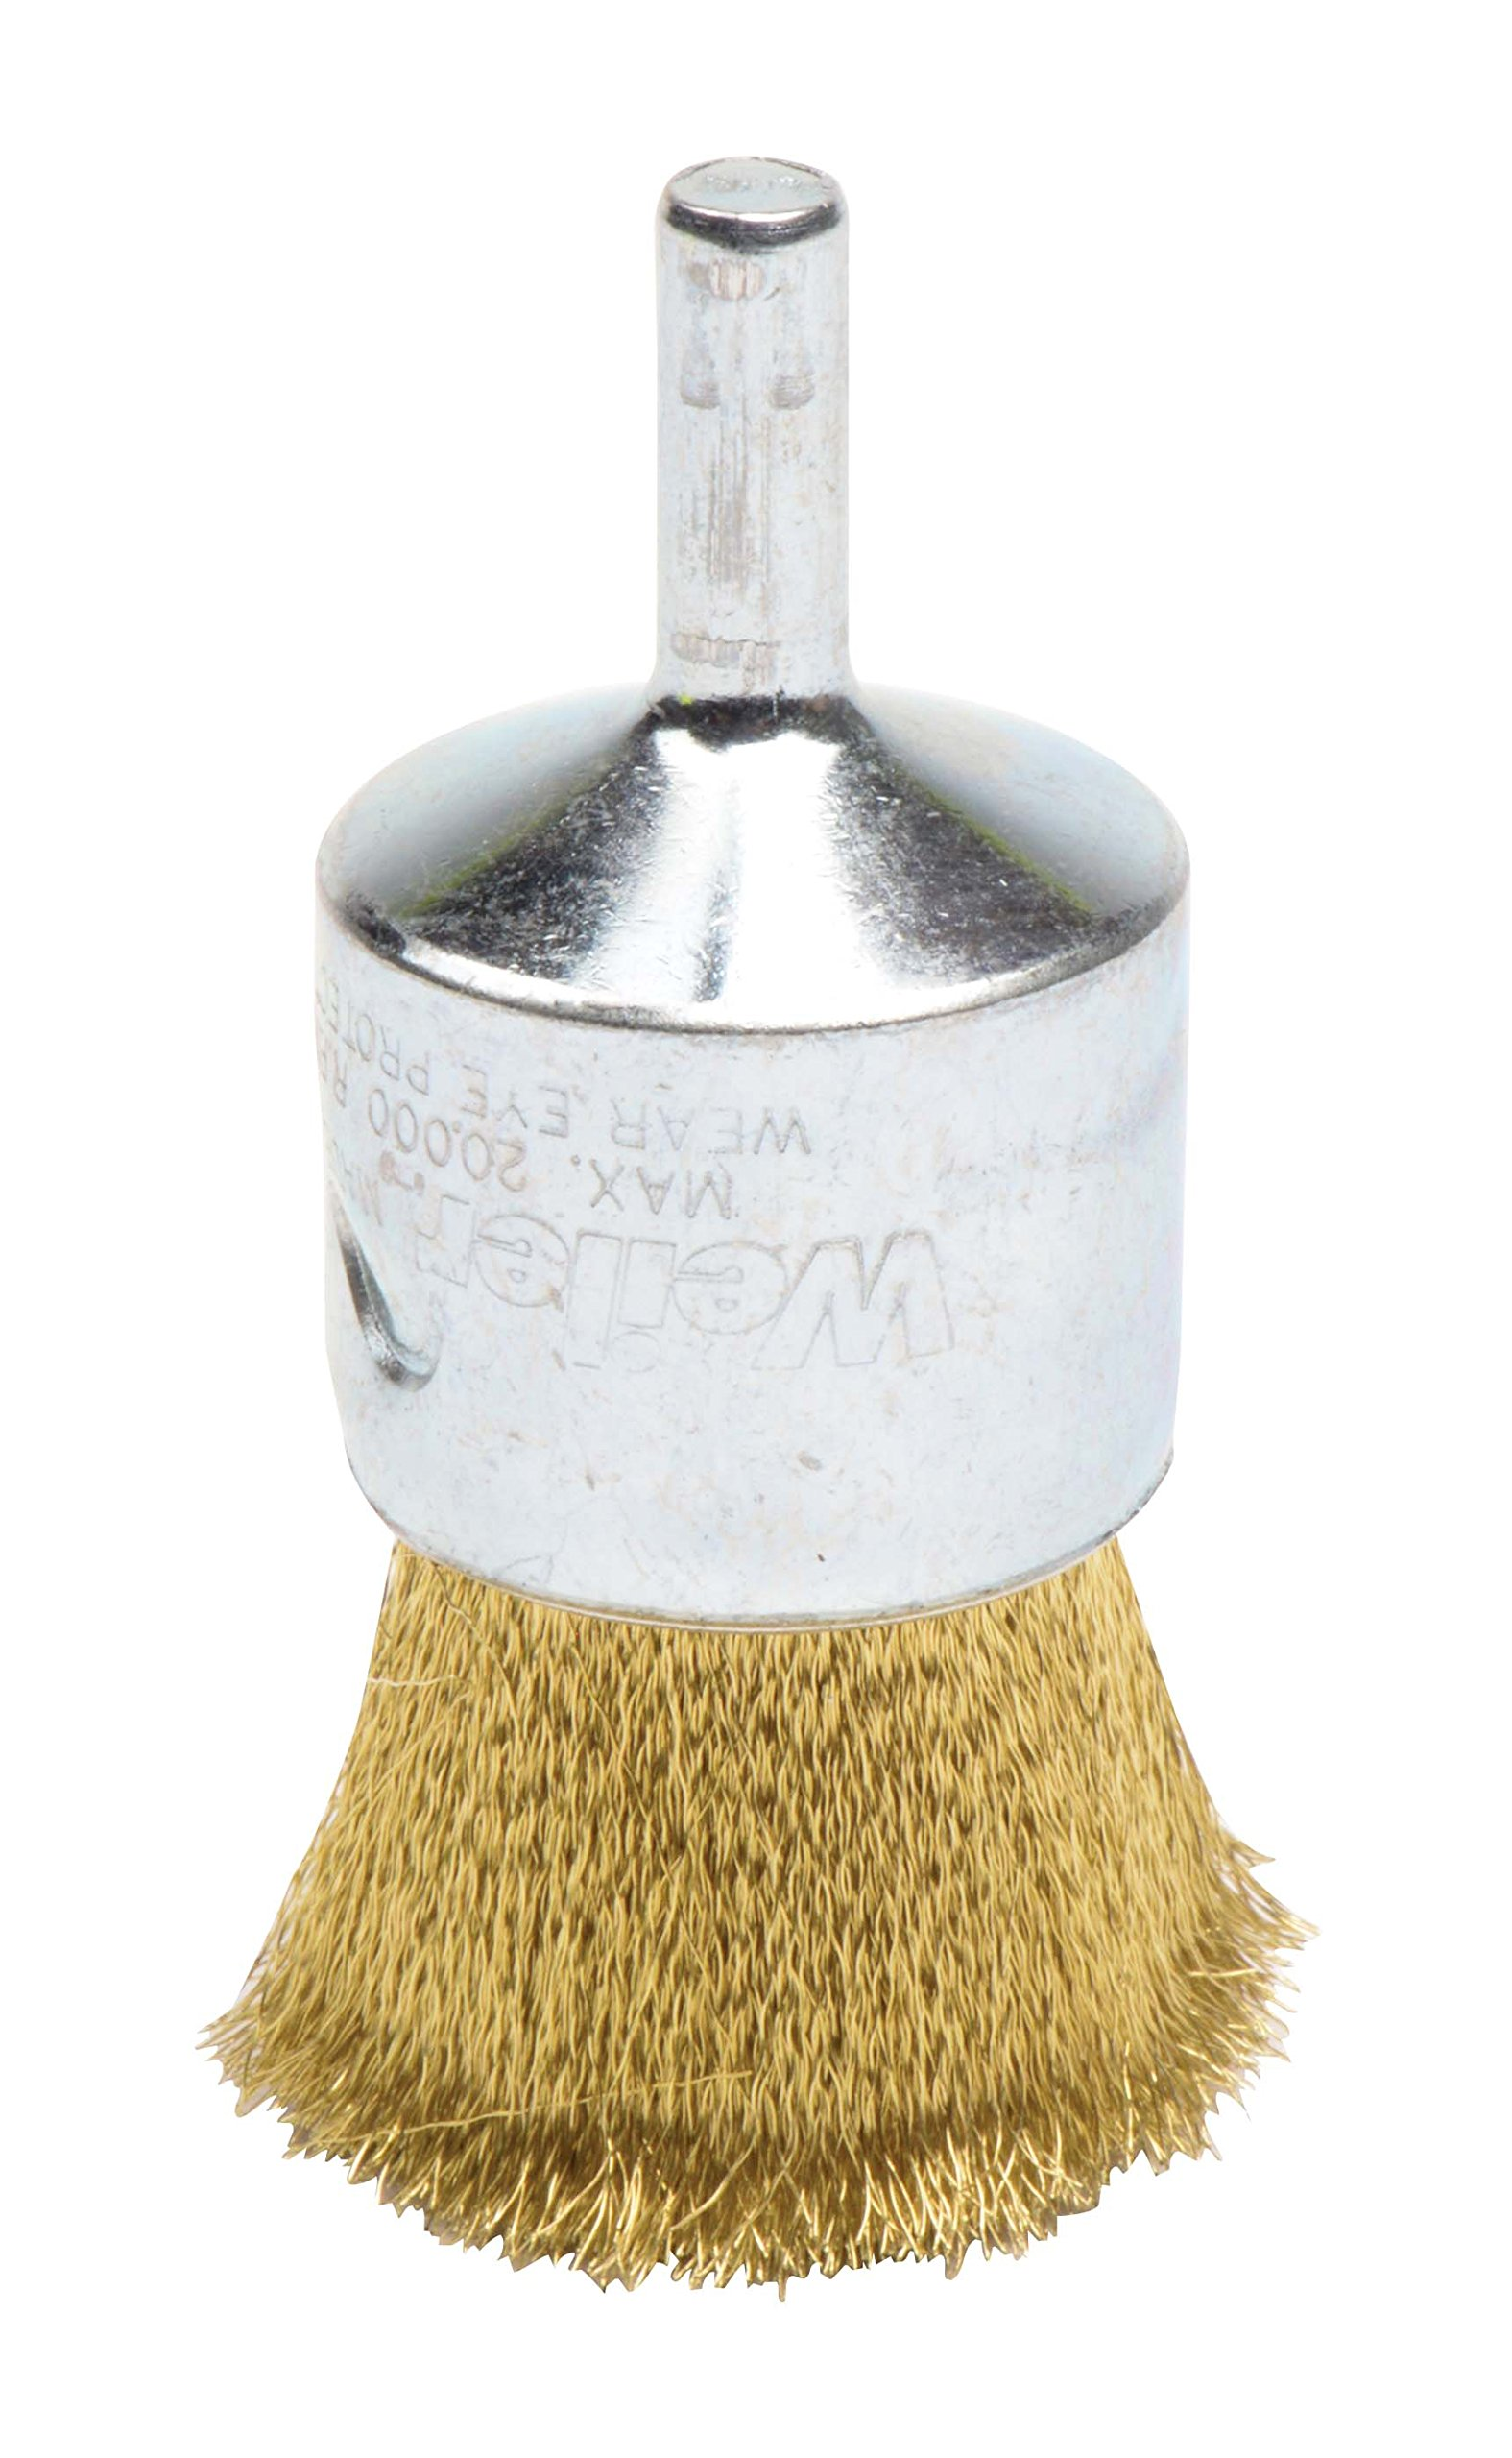 Weiler 10128 Crimped Wire End Brush, 1'', 0.05'' Brass Fill (Pack of 10)